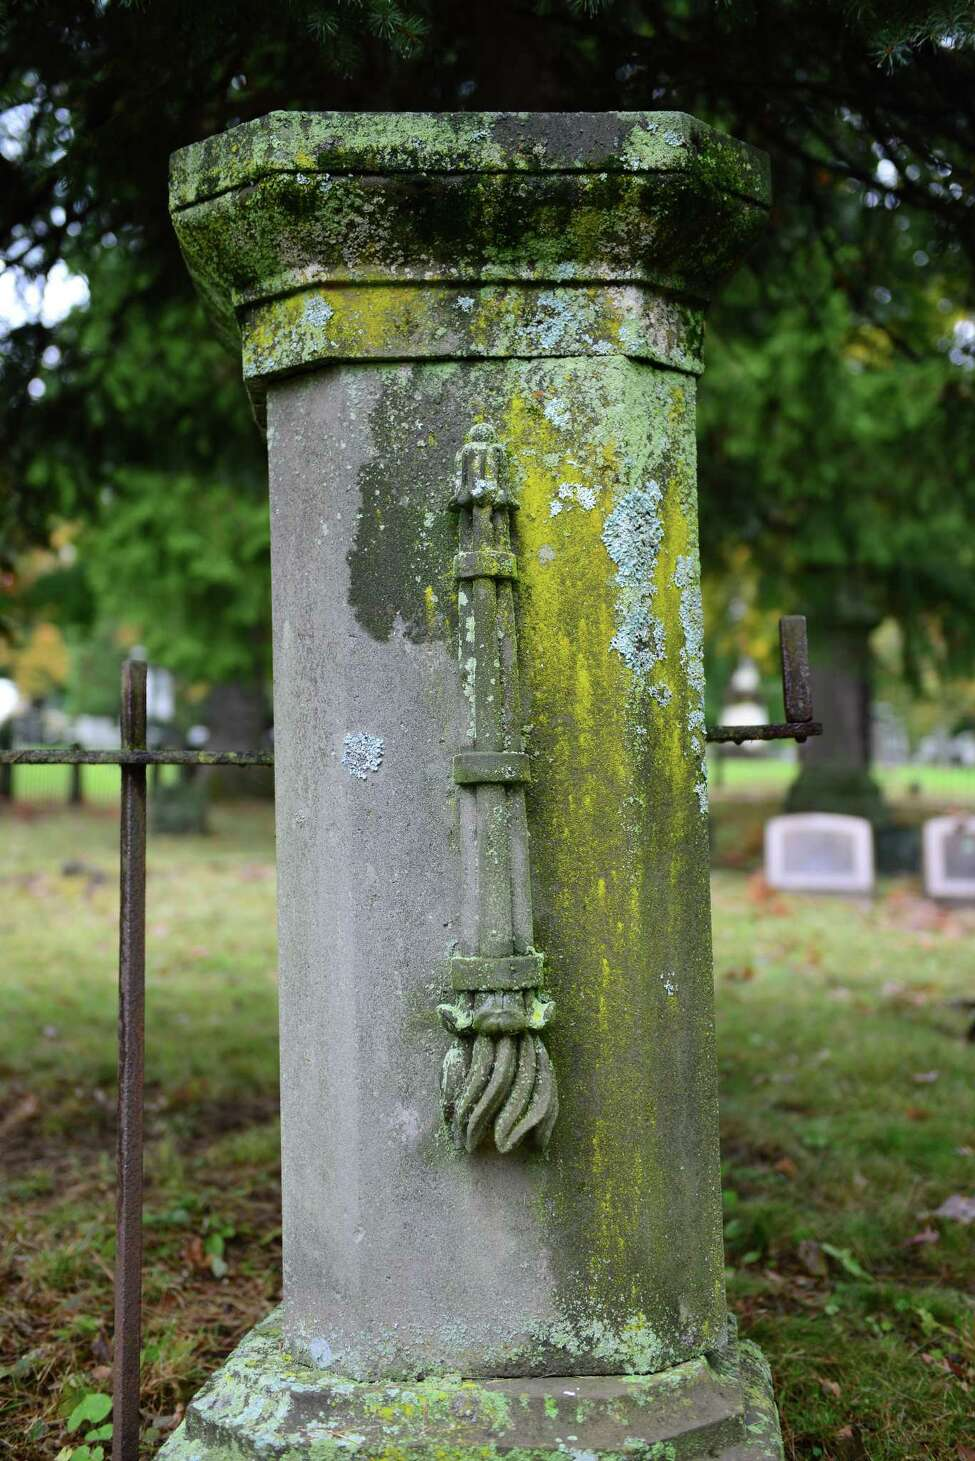 An upside down torch marks the entrance into the James family plot at Albany Rural Cemetery. The orientation of the torch is said to symbolize the end of life. (Will Waldron/Times Union)